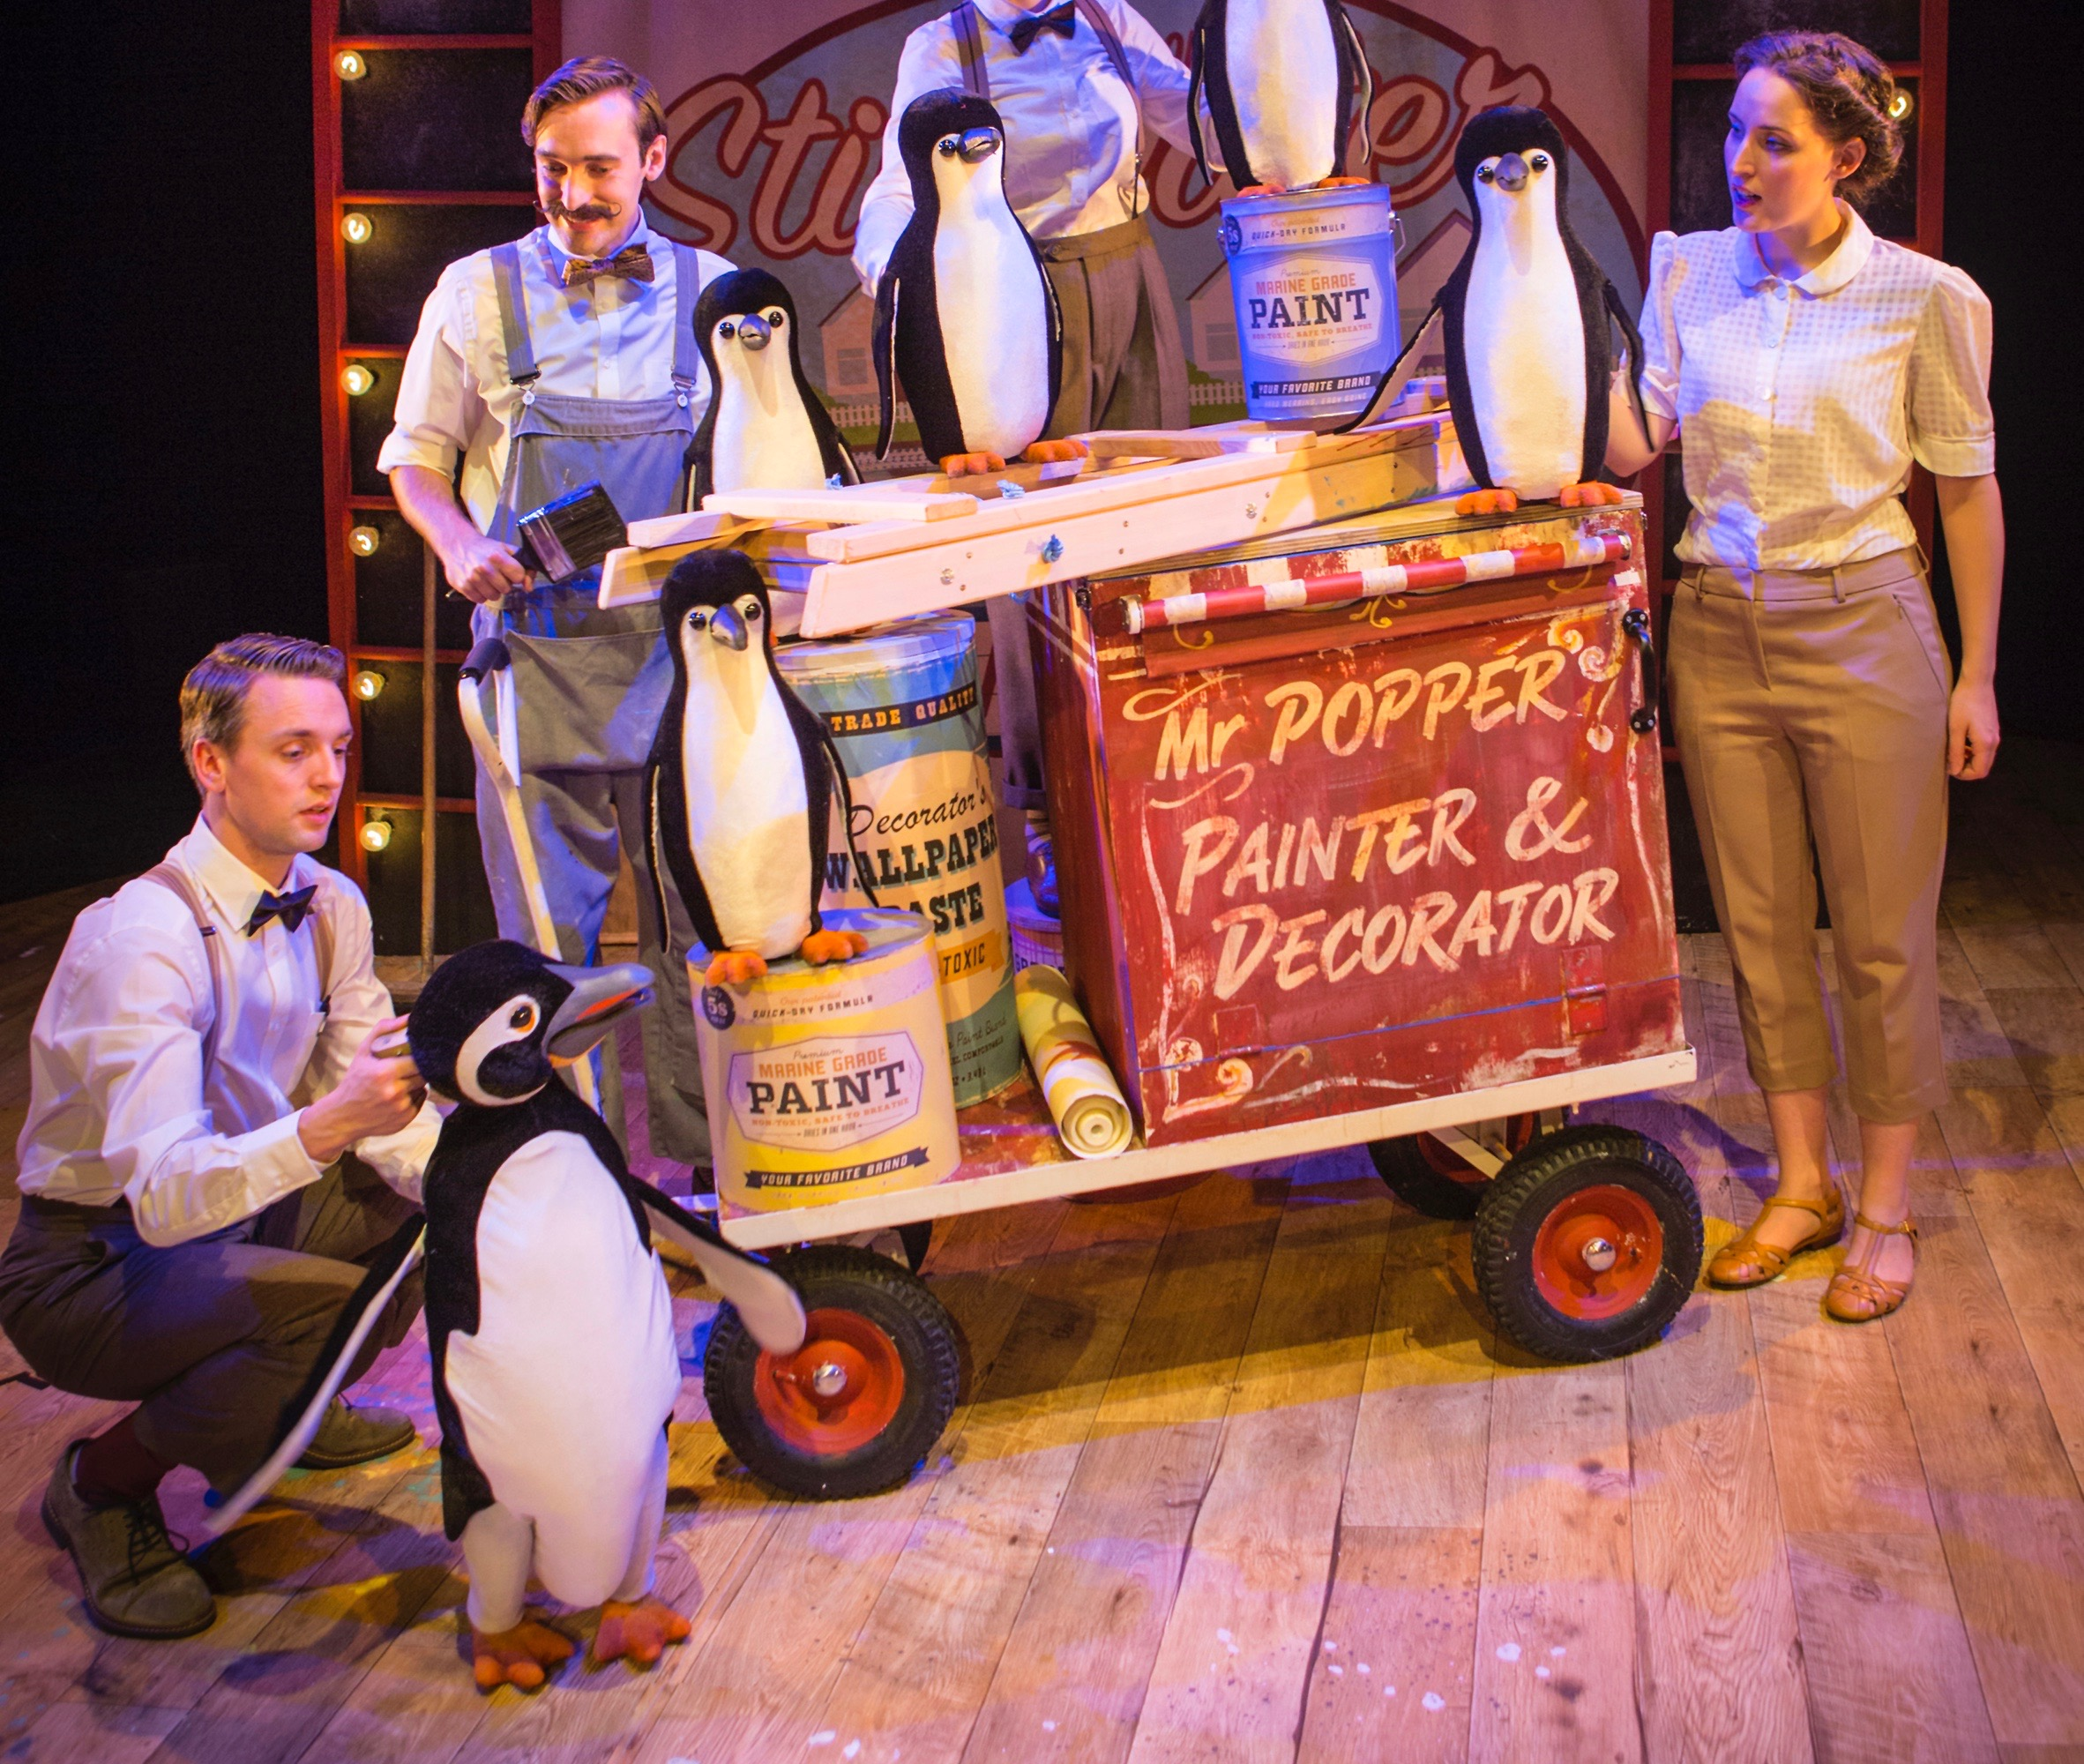 Cast members in Mr Popper's Penguins